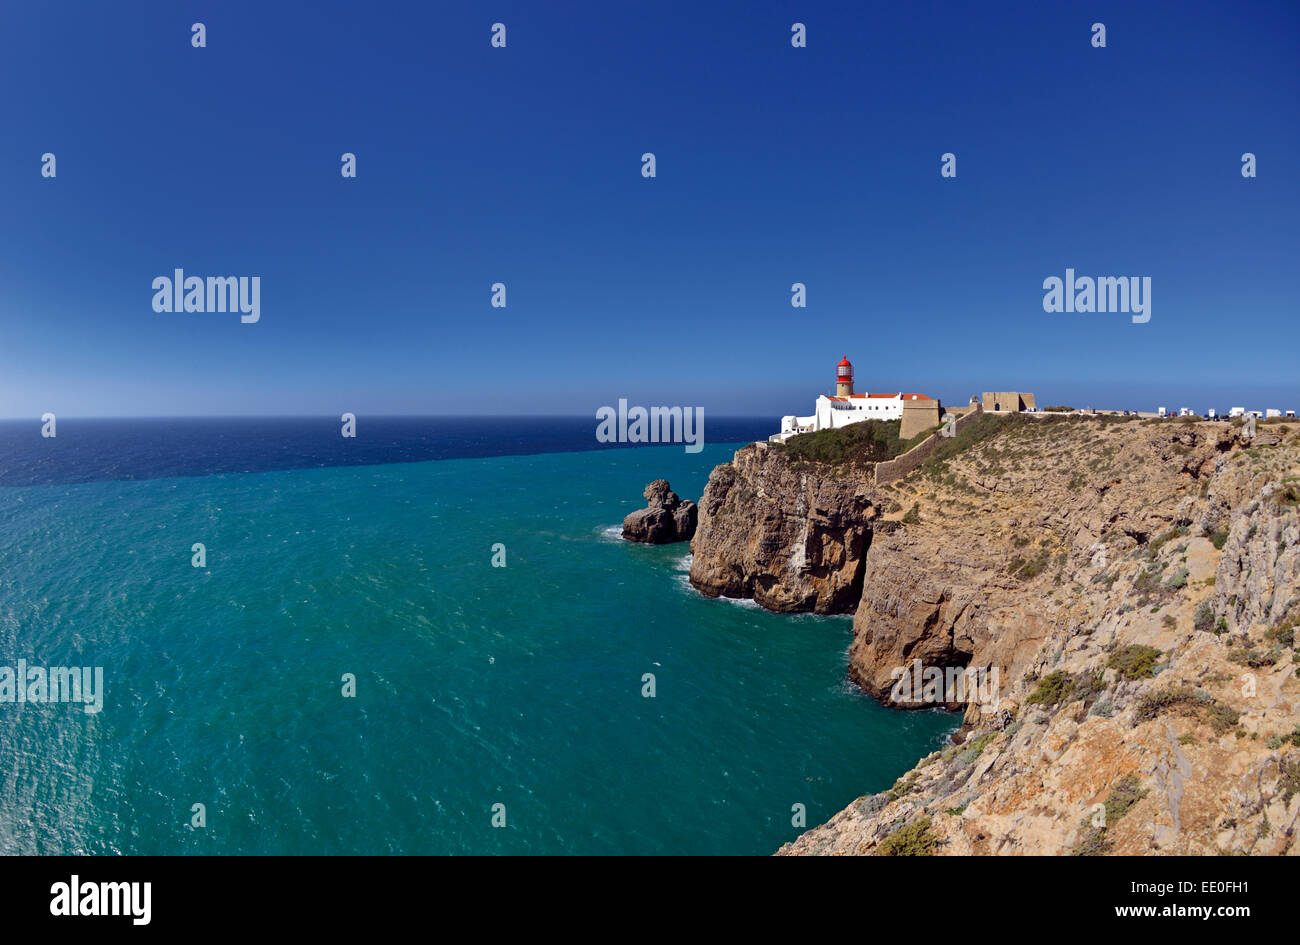 Portugal, Algarve: View of Lighthouse and Cape Saint Vincent at Nature Park Costa Vicentina Stock Photo